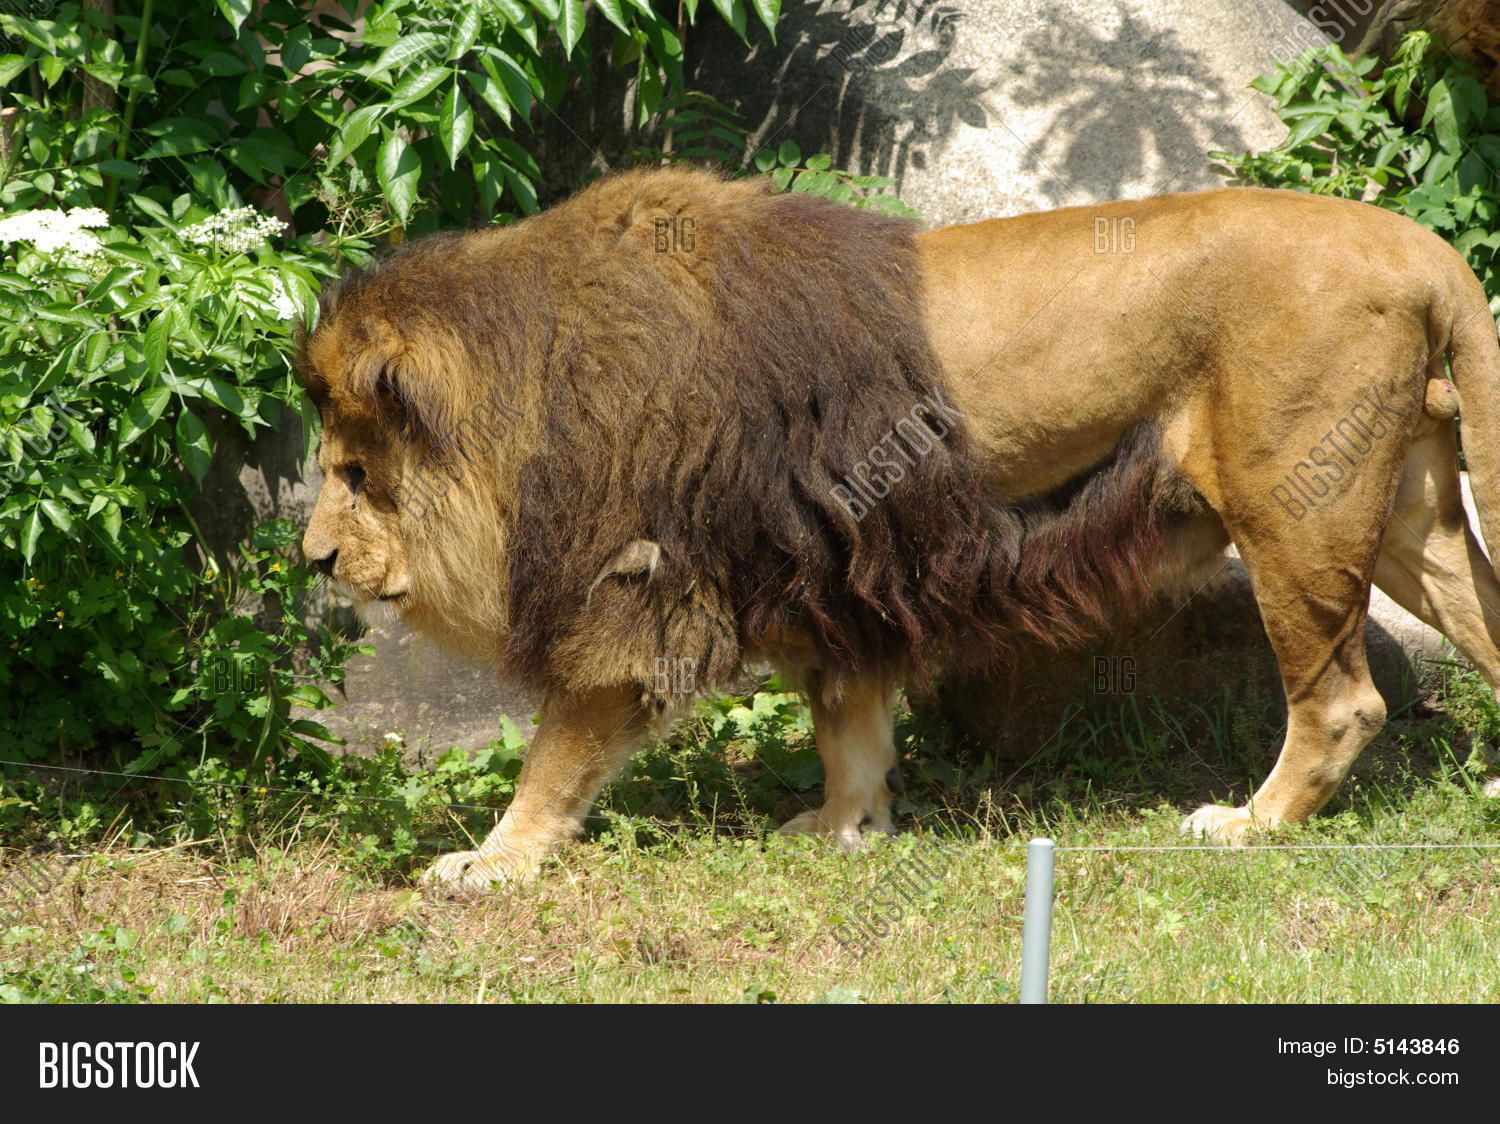 Muscle Lion Walking Image & Photo | Bigstock